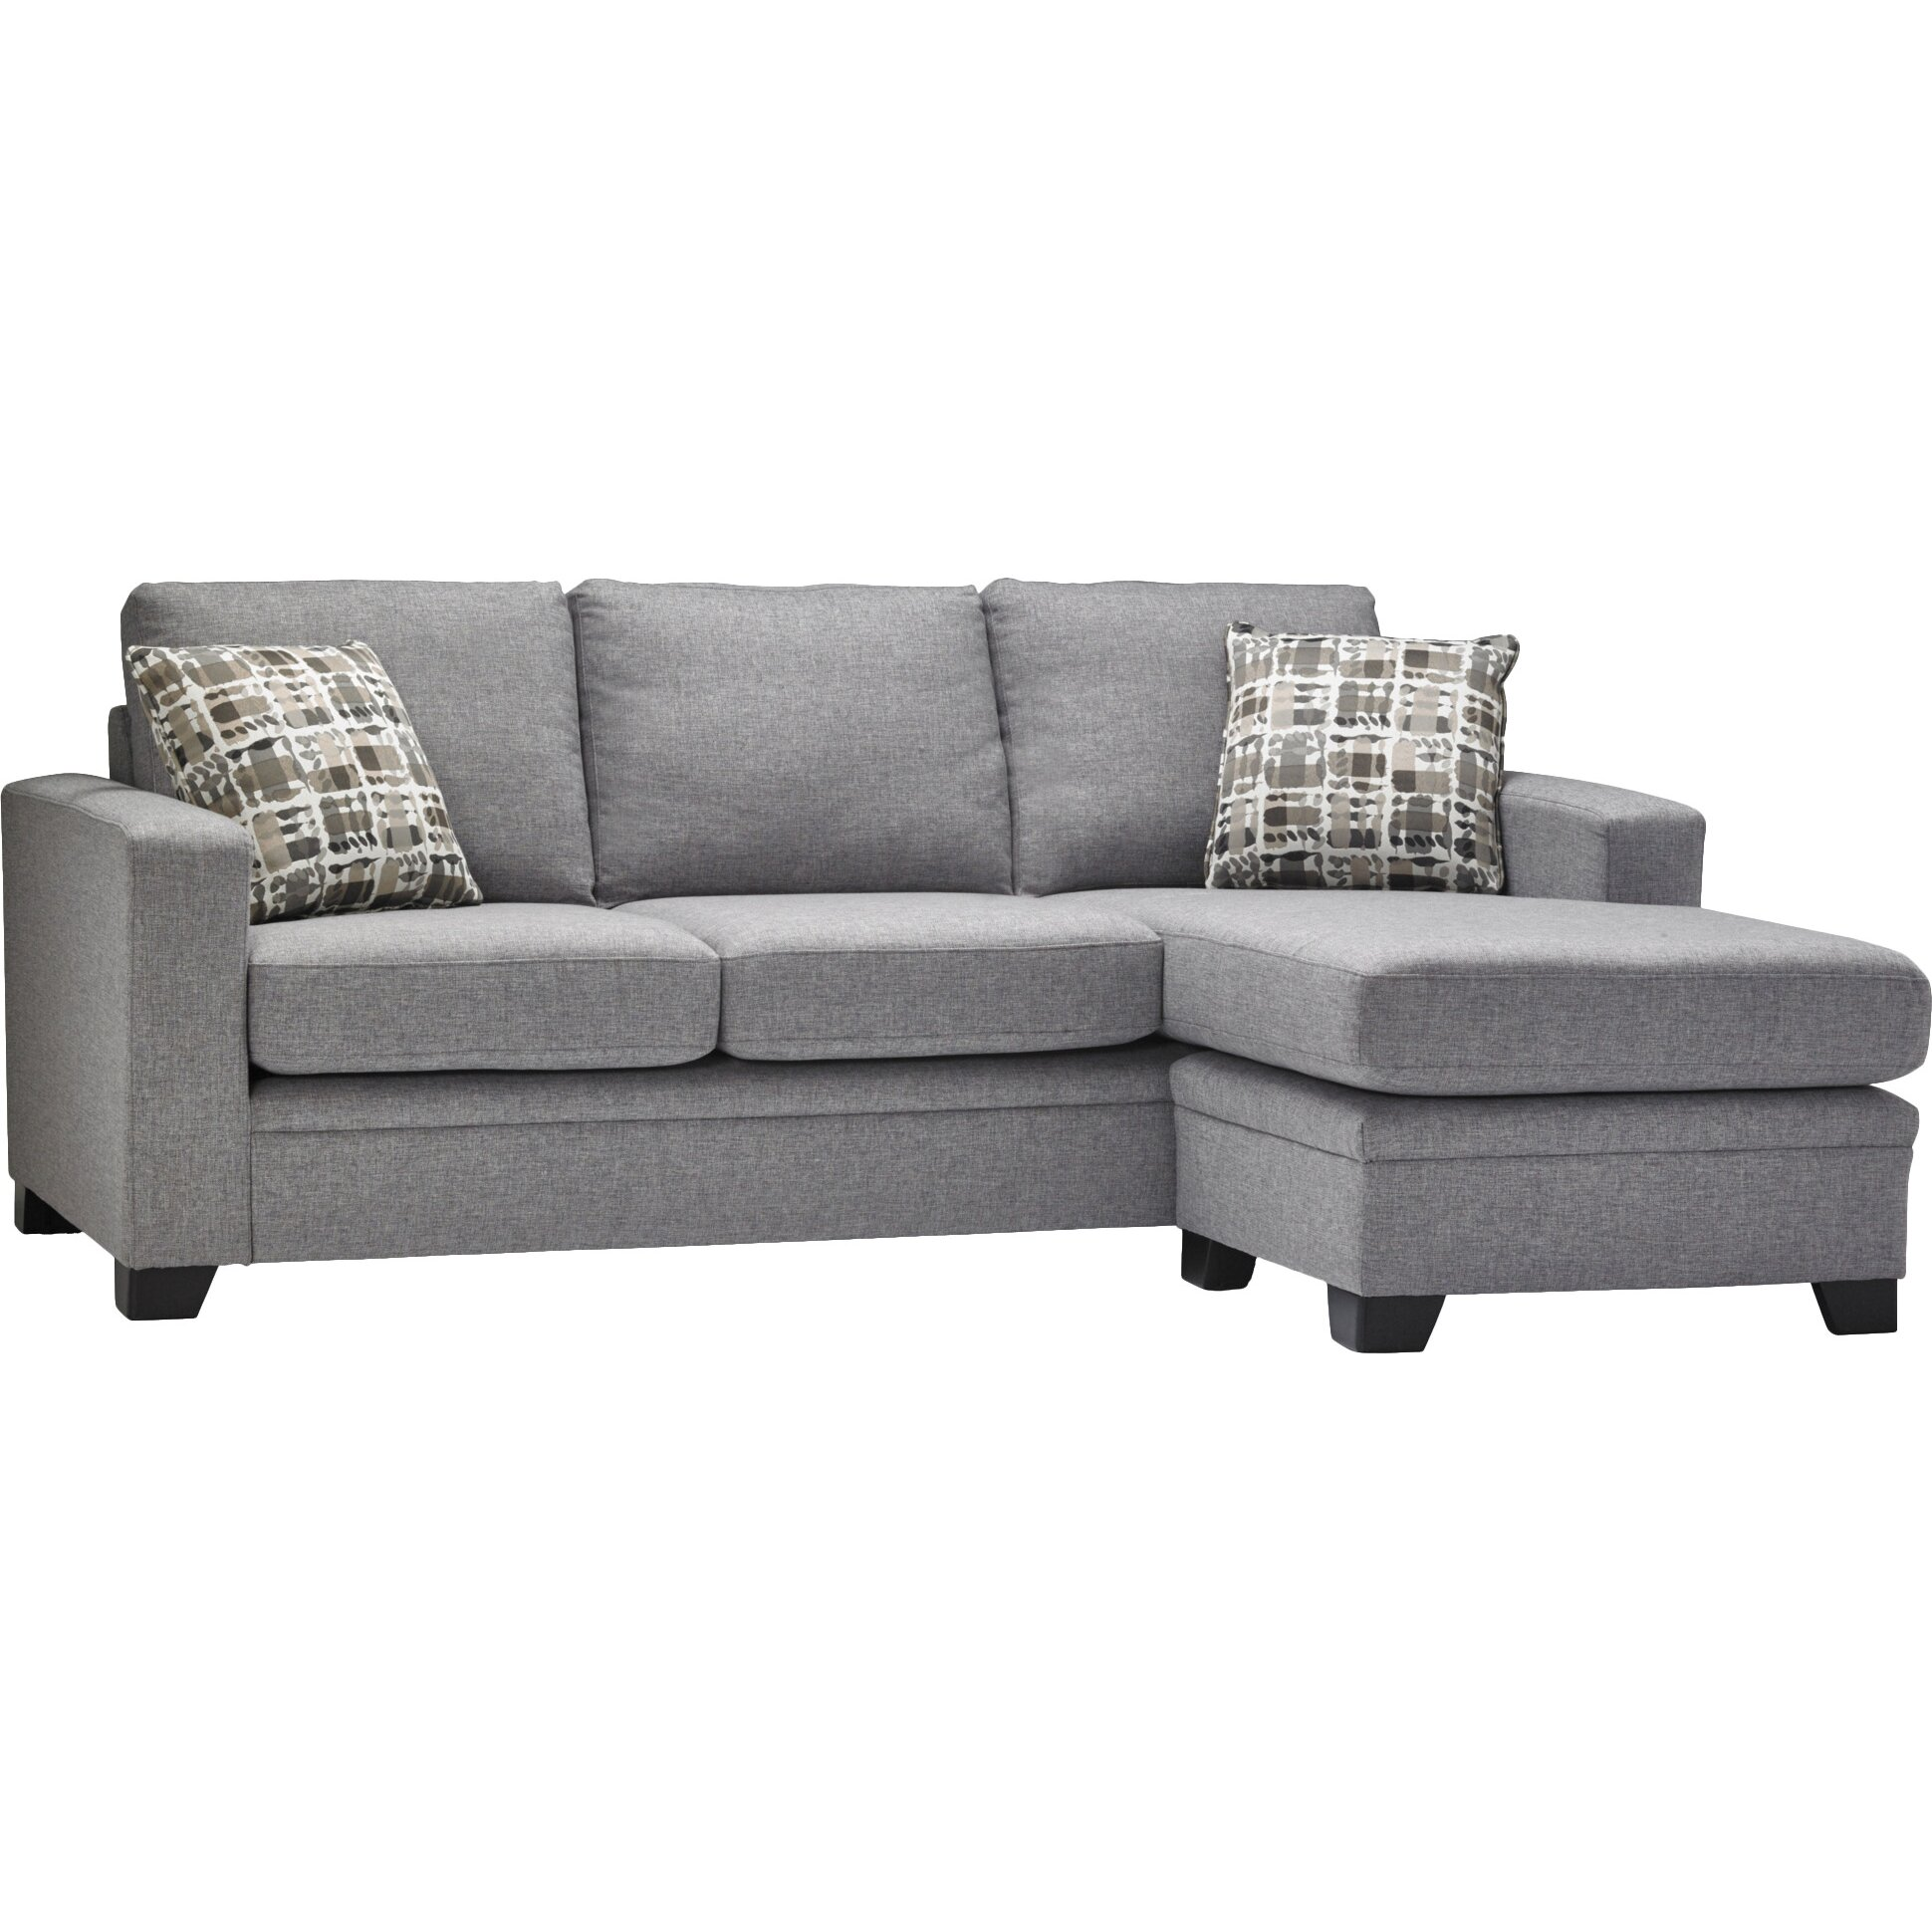 Sofas to go ray reversible chaise sectional reviews for Sofas to go